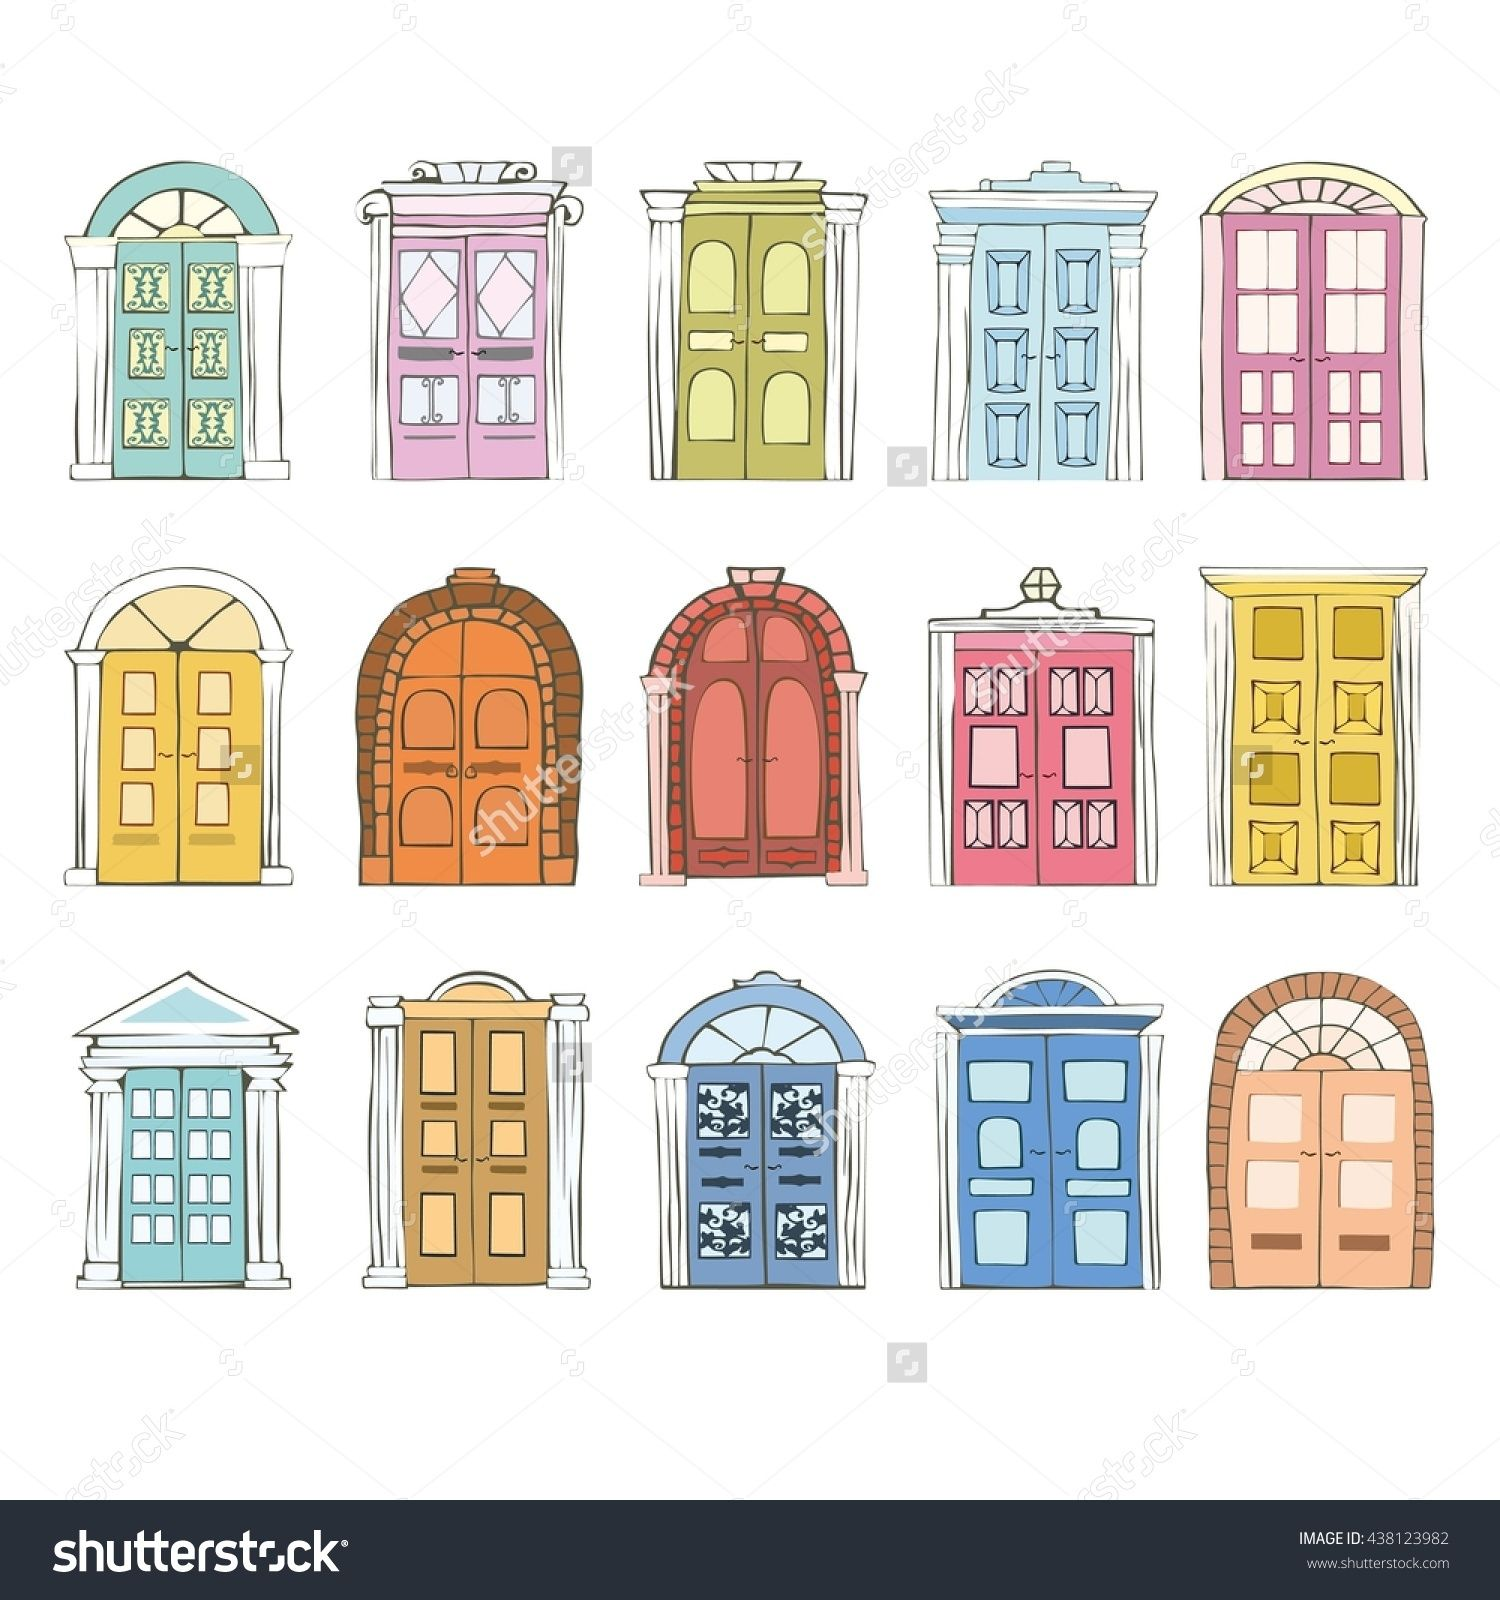 svg library stock Vector door hand drawn. Pin on buildingd